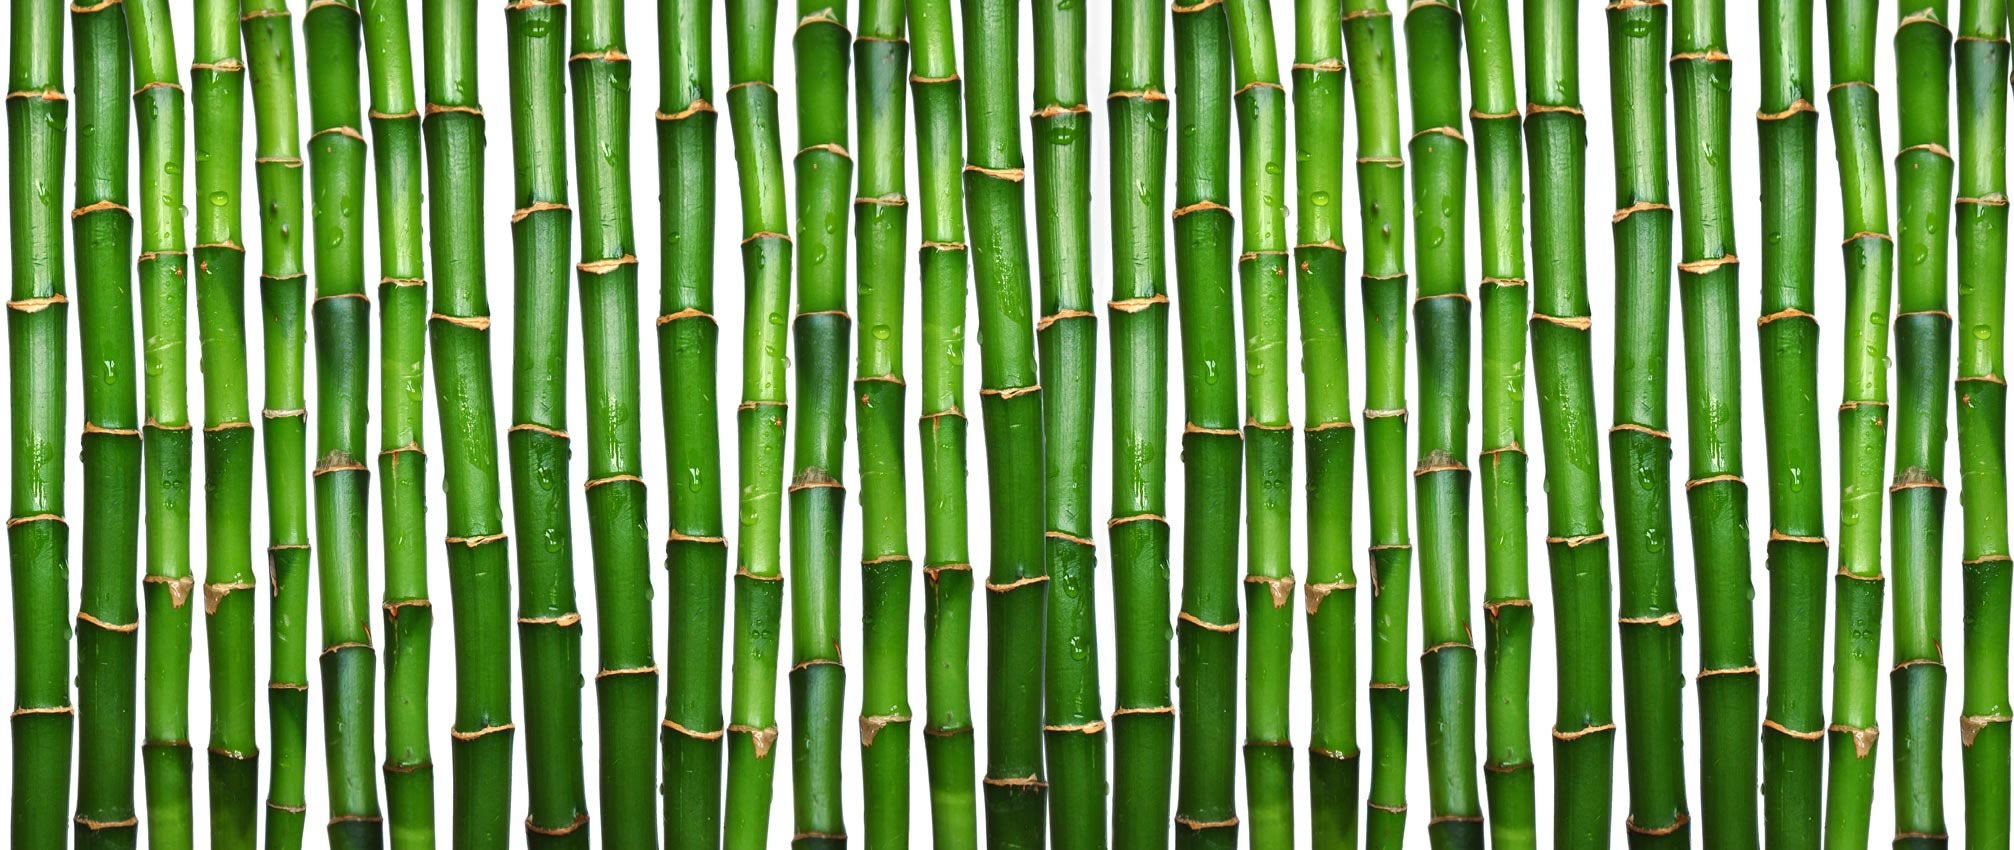 bamboo wallpapers high quality